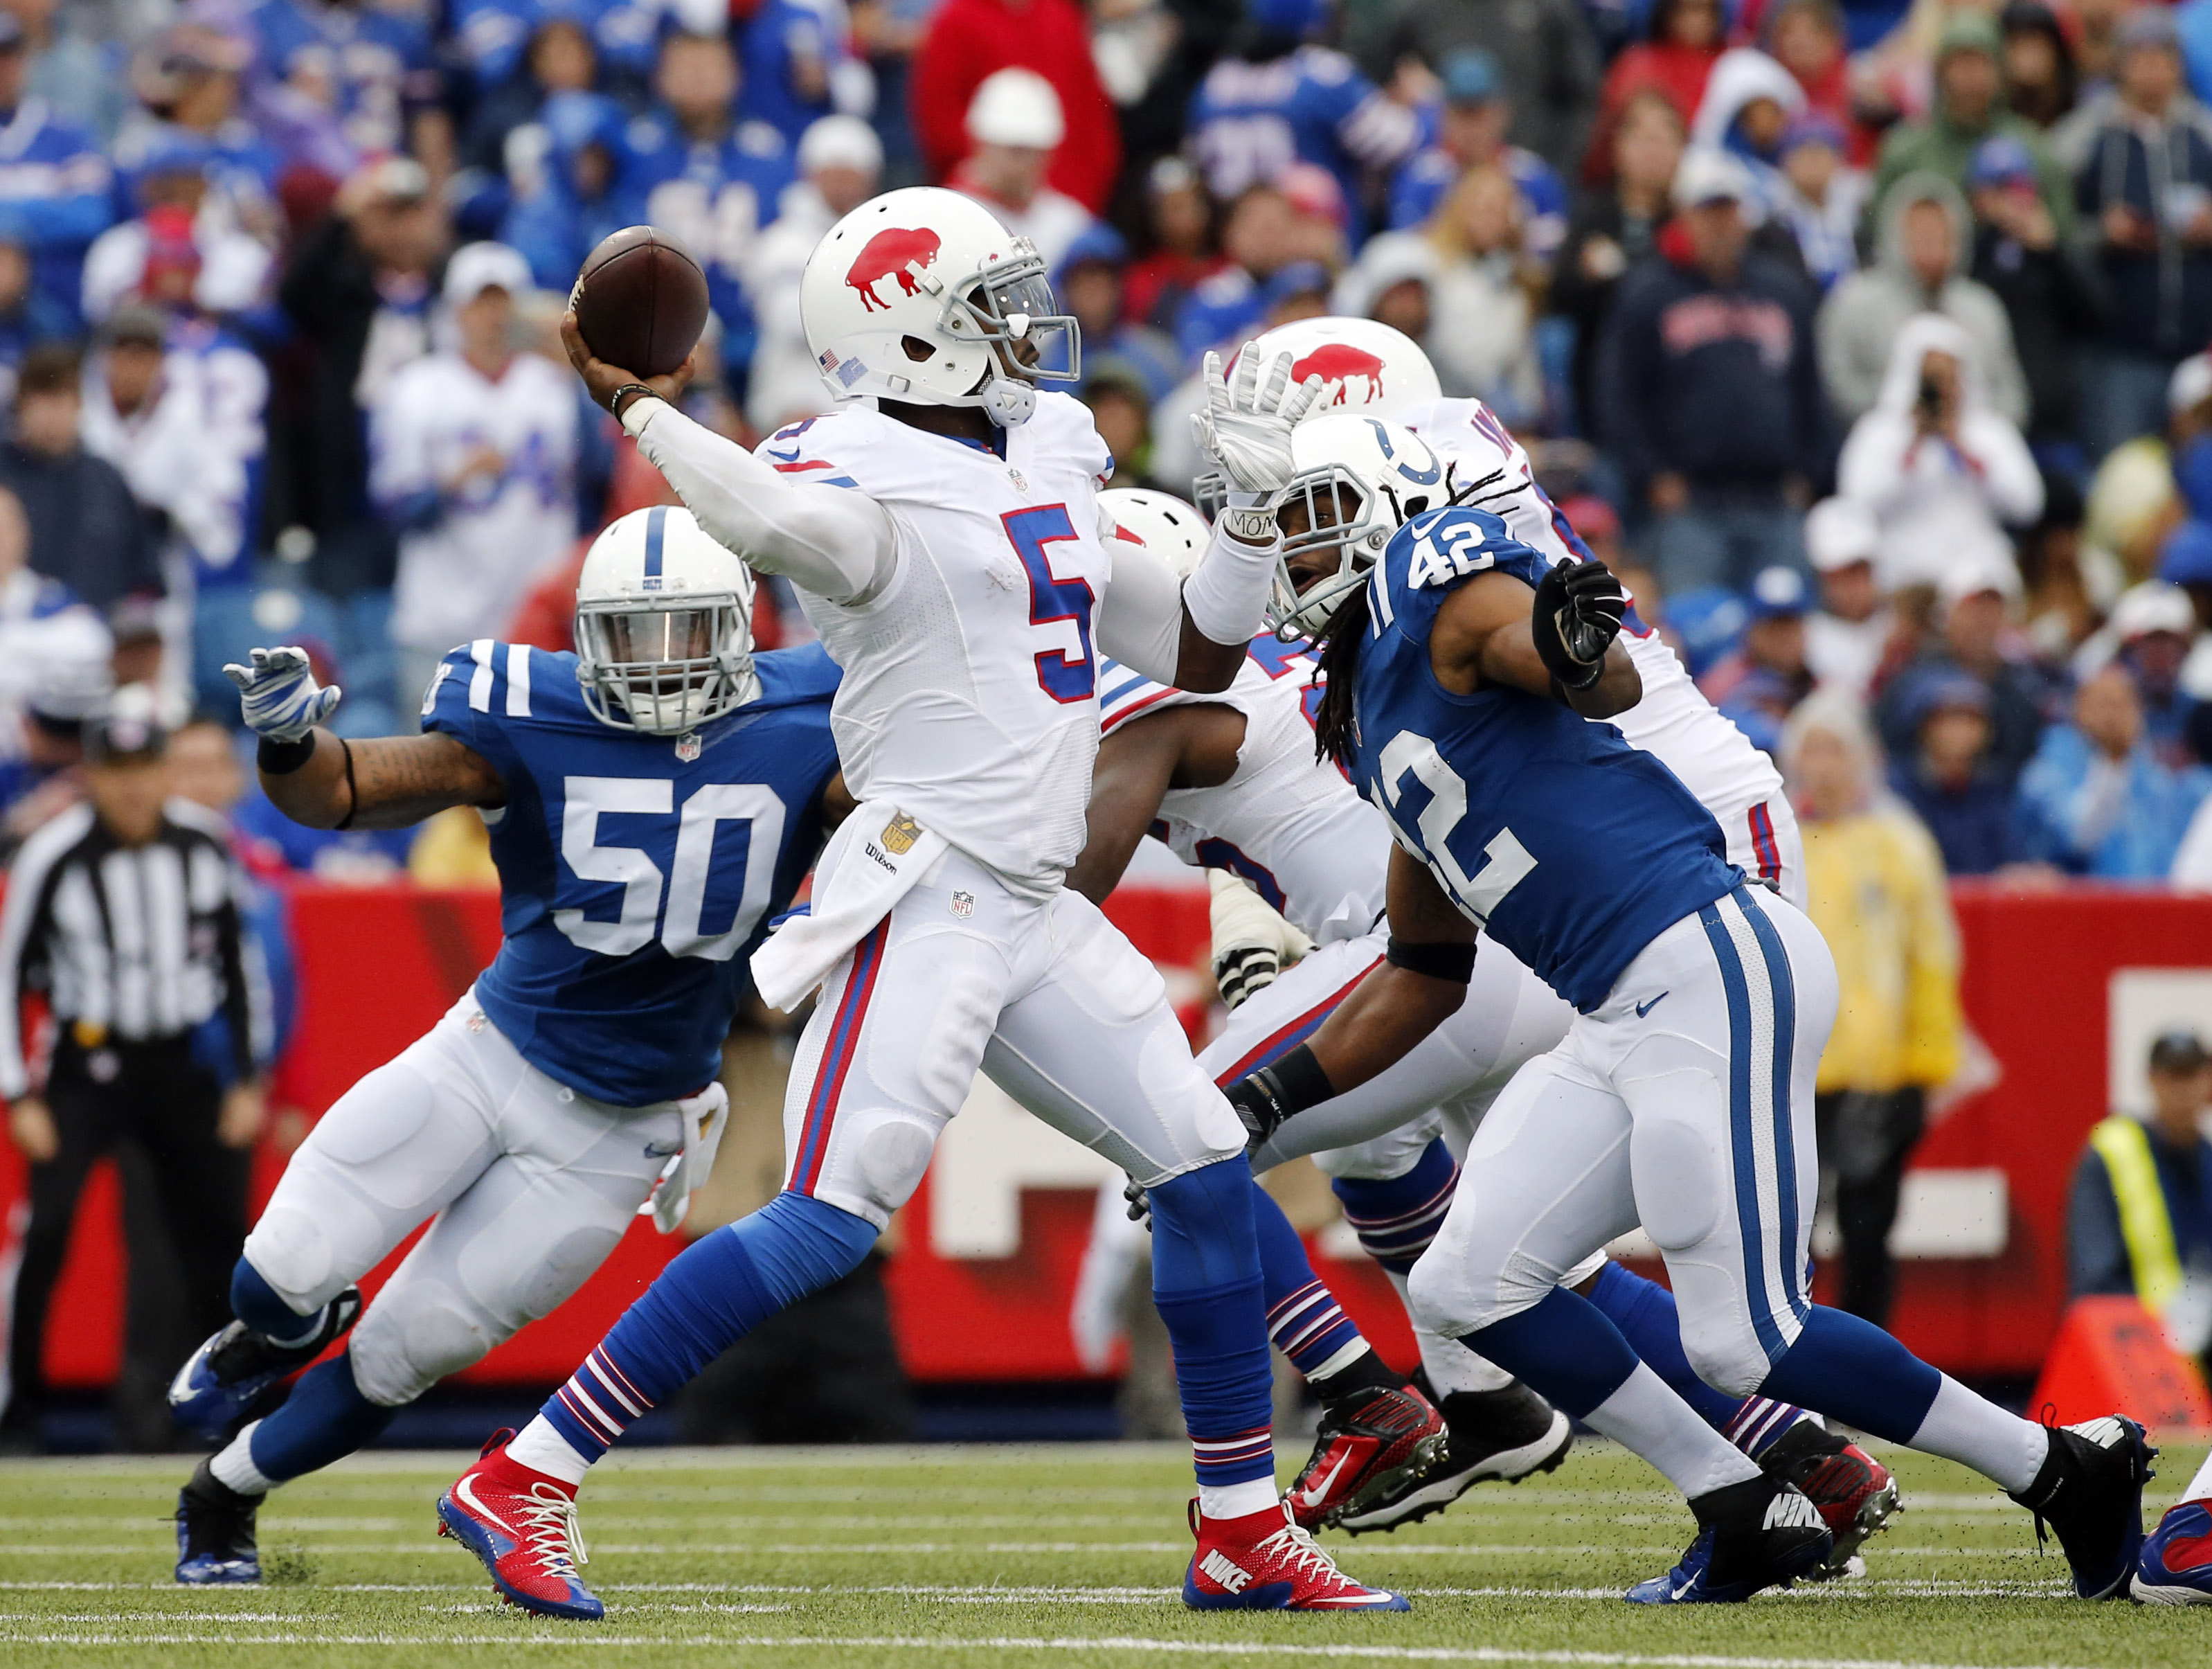 Buffalo Bills quarterback Tyrod Taylor (5) passes while under pressure from Indianapolis Colts inside linebacker Jerrell Freeman (50) and strong safety Clayton Geathers (42) during the second half of an NFL football game on Sunday, Sept. 13, 2015, in Orch